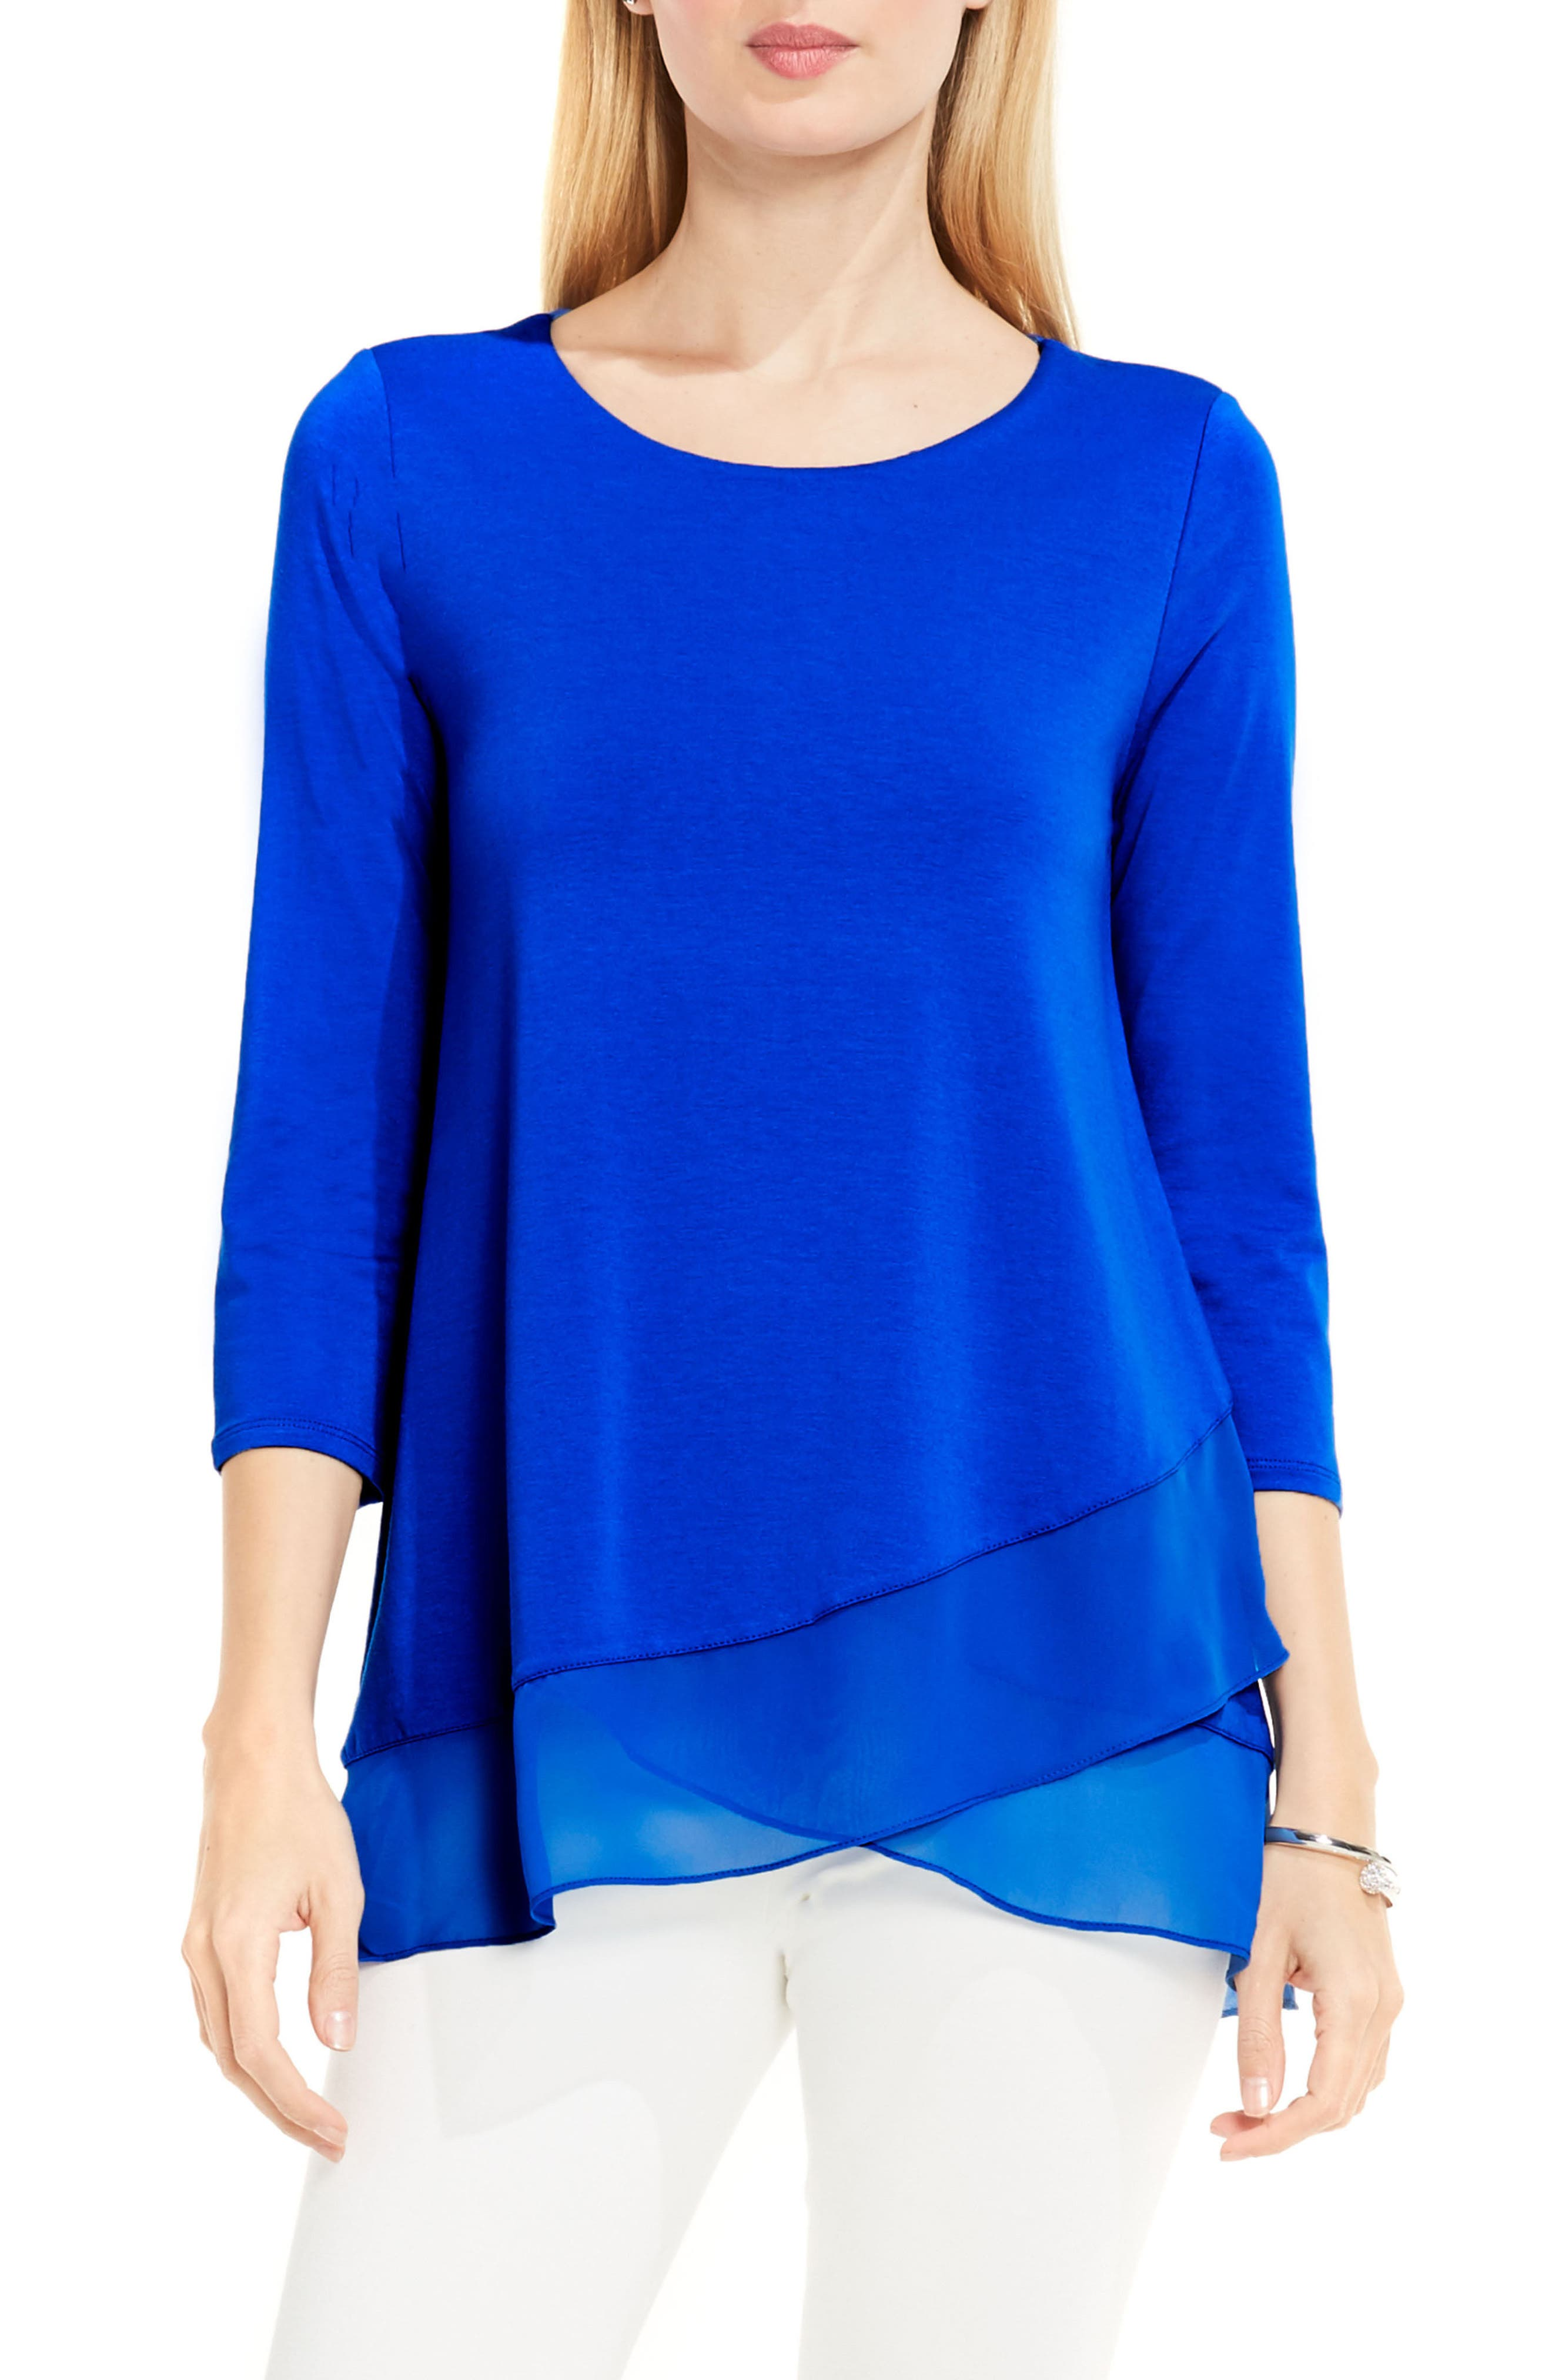 Alternate Image 1 Selected - Vince Camuto Asymmetrical Chiffon Hem Top